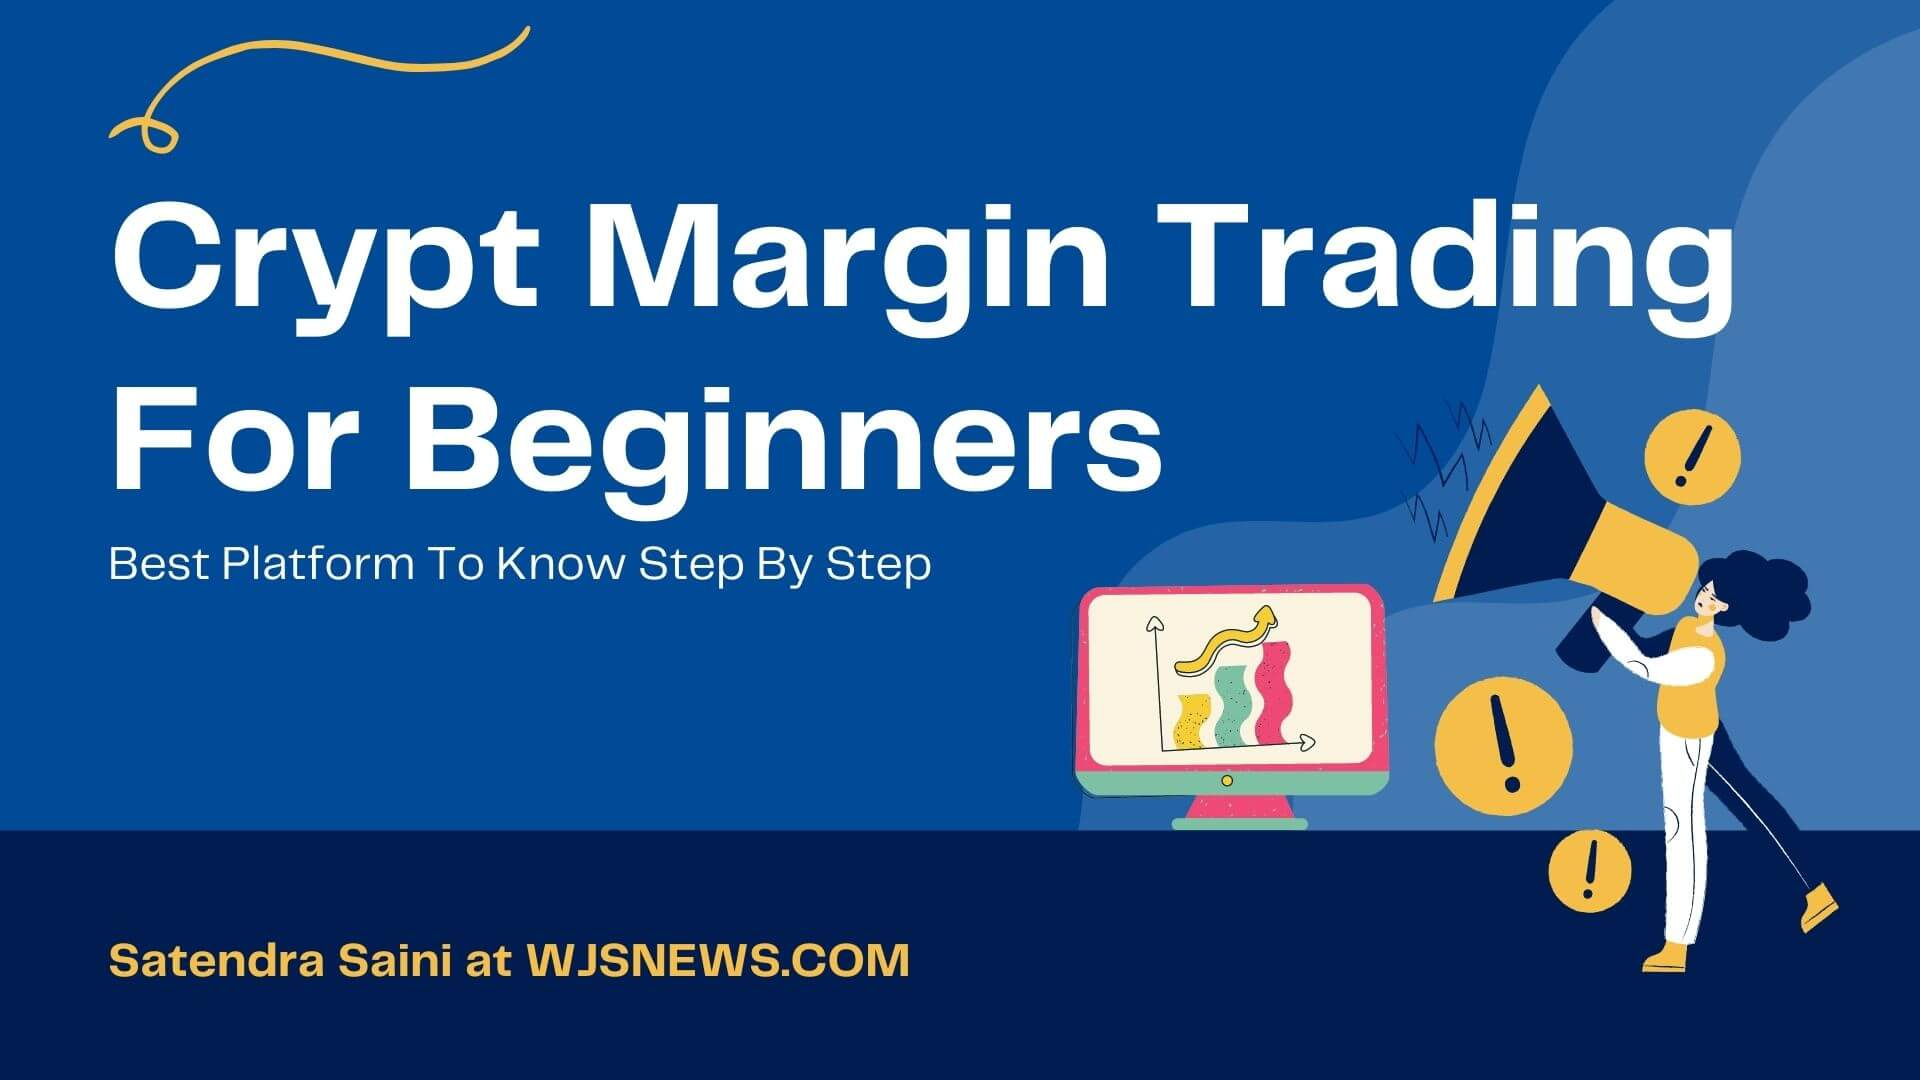 Crypt Margin Trading Beginners Guide